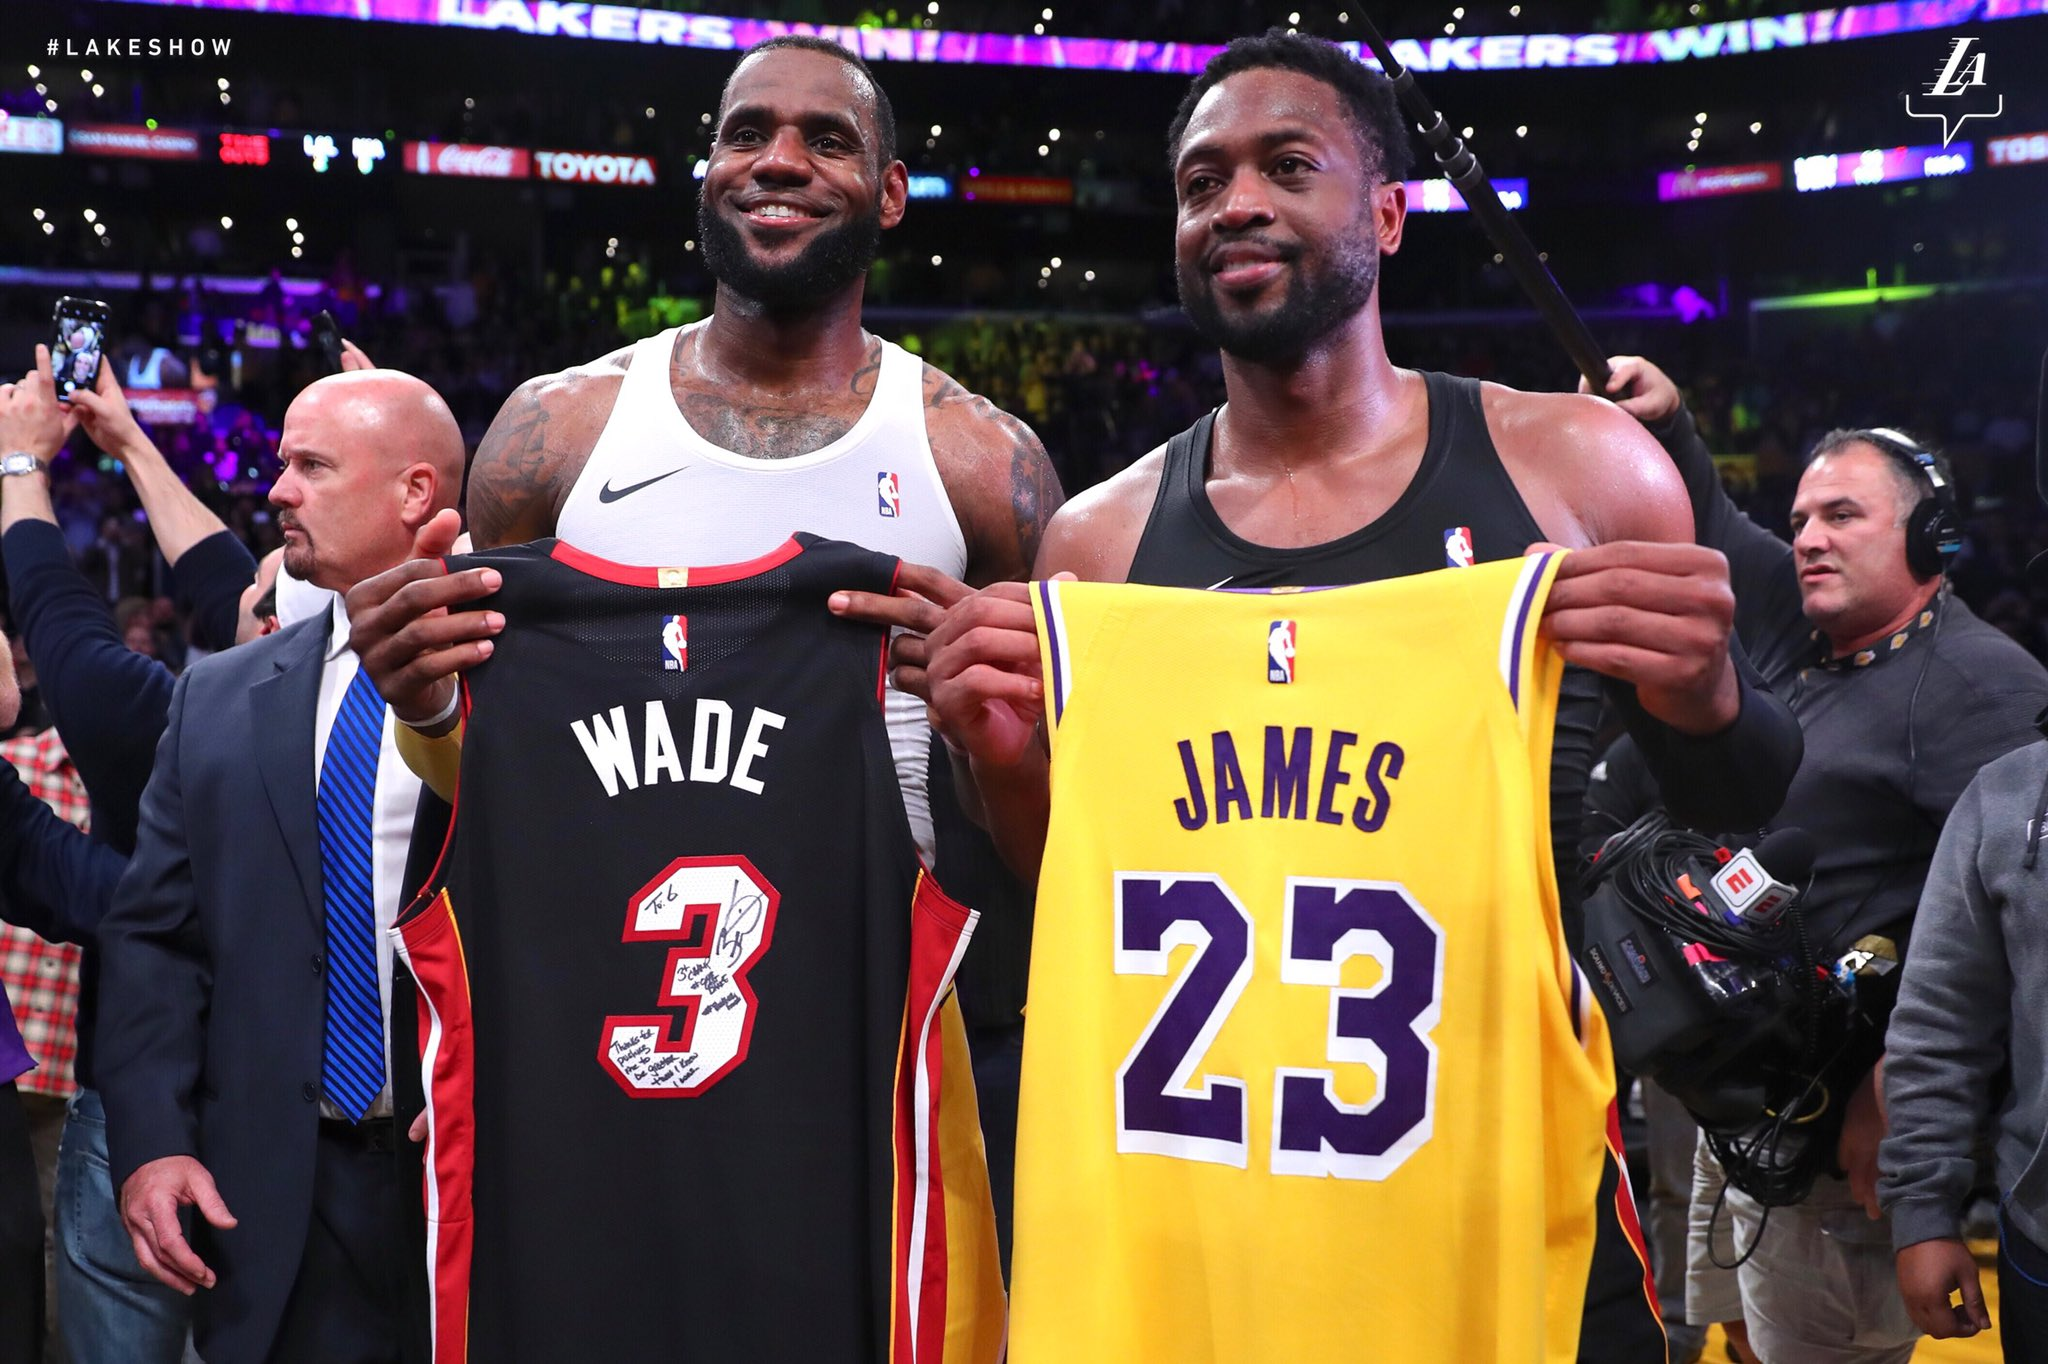 Nothing but love and respect #OneLastDance https://t.co/v4CQqOcMIG